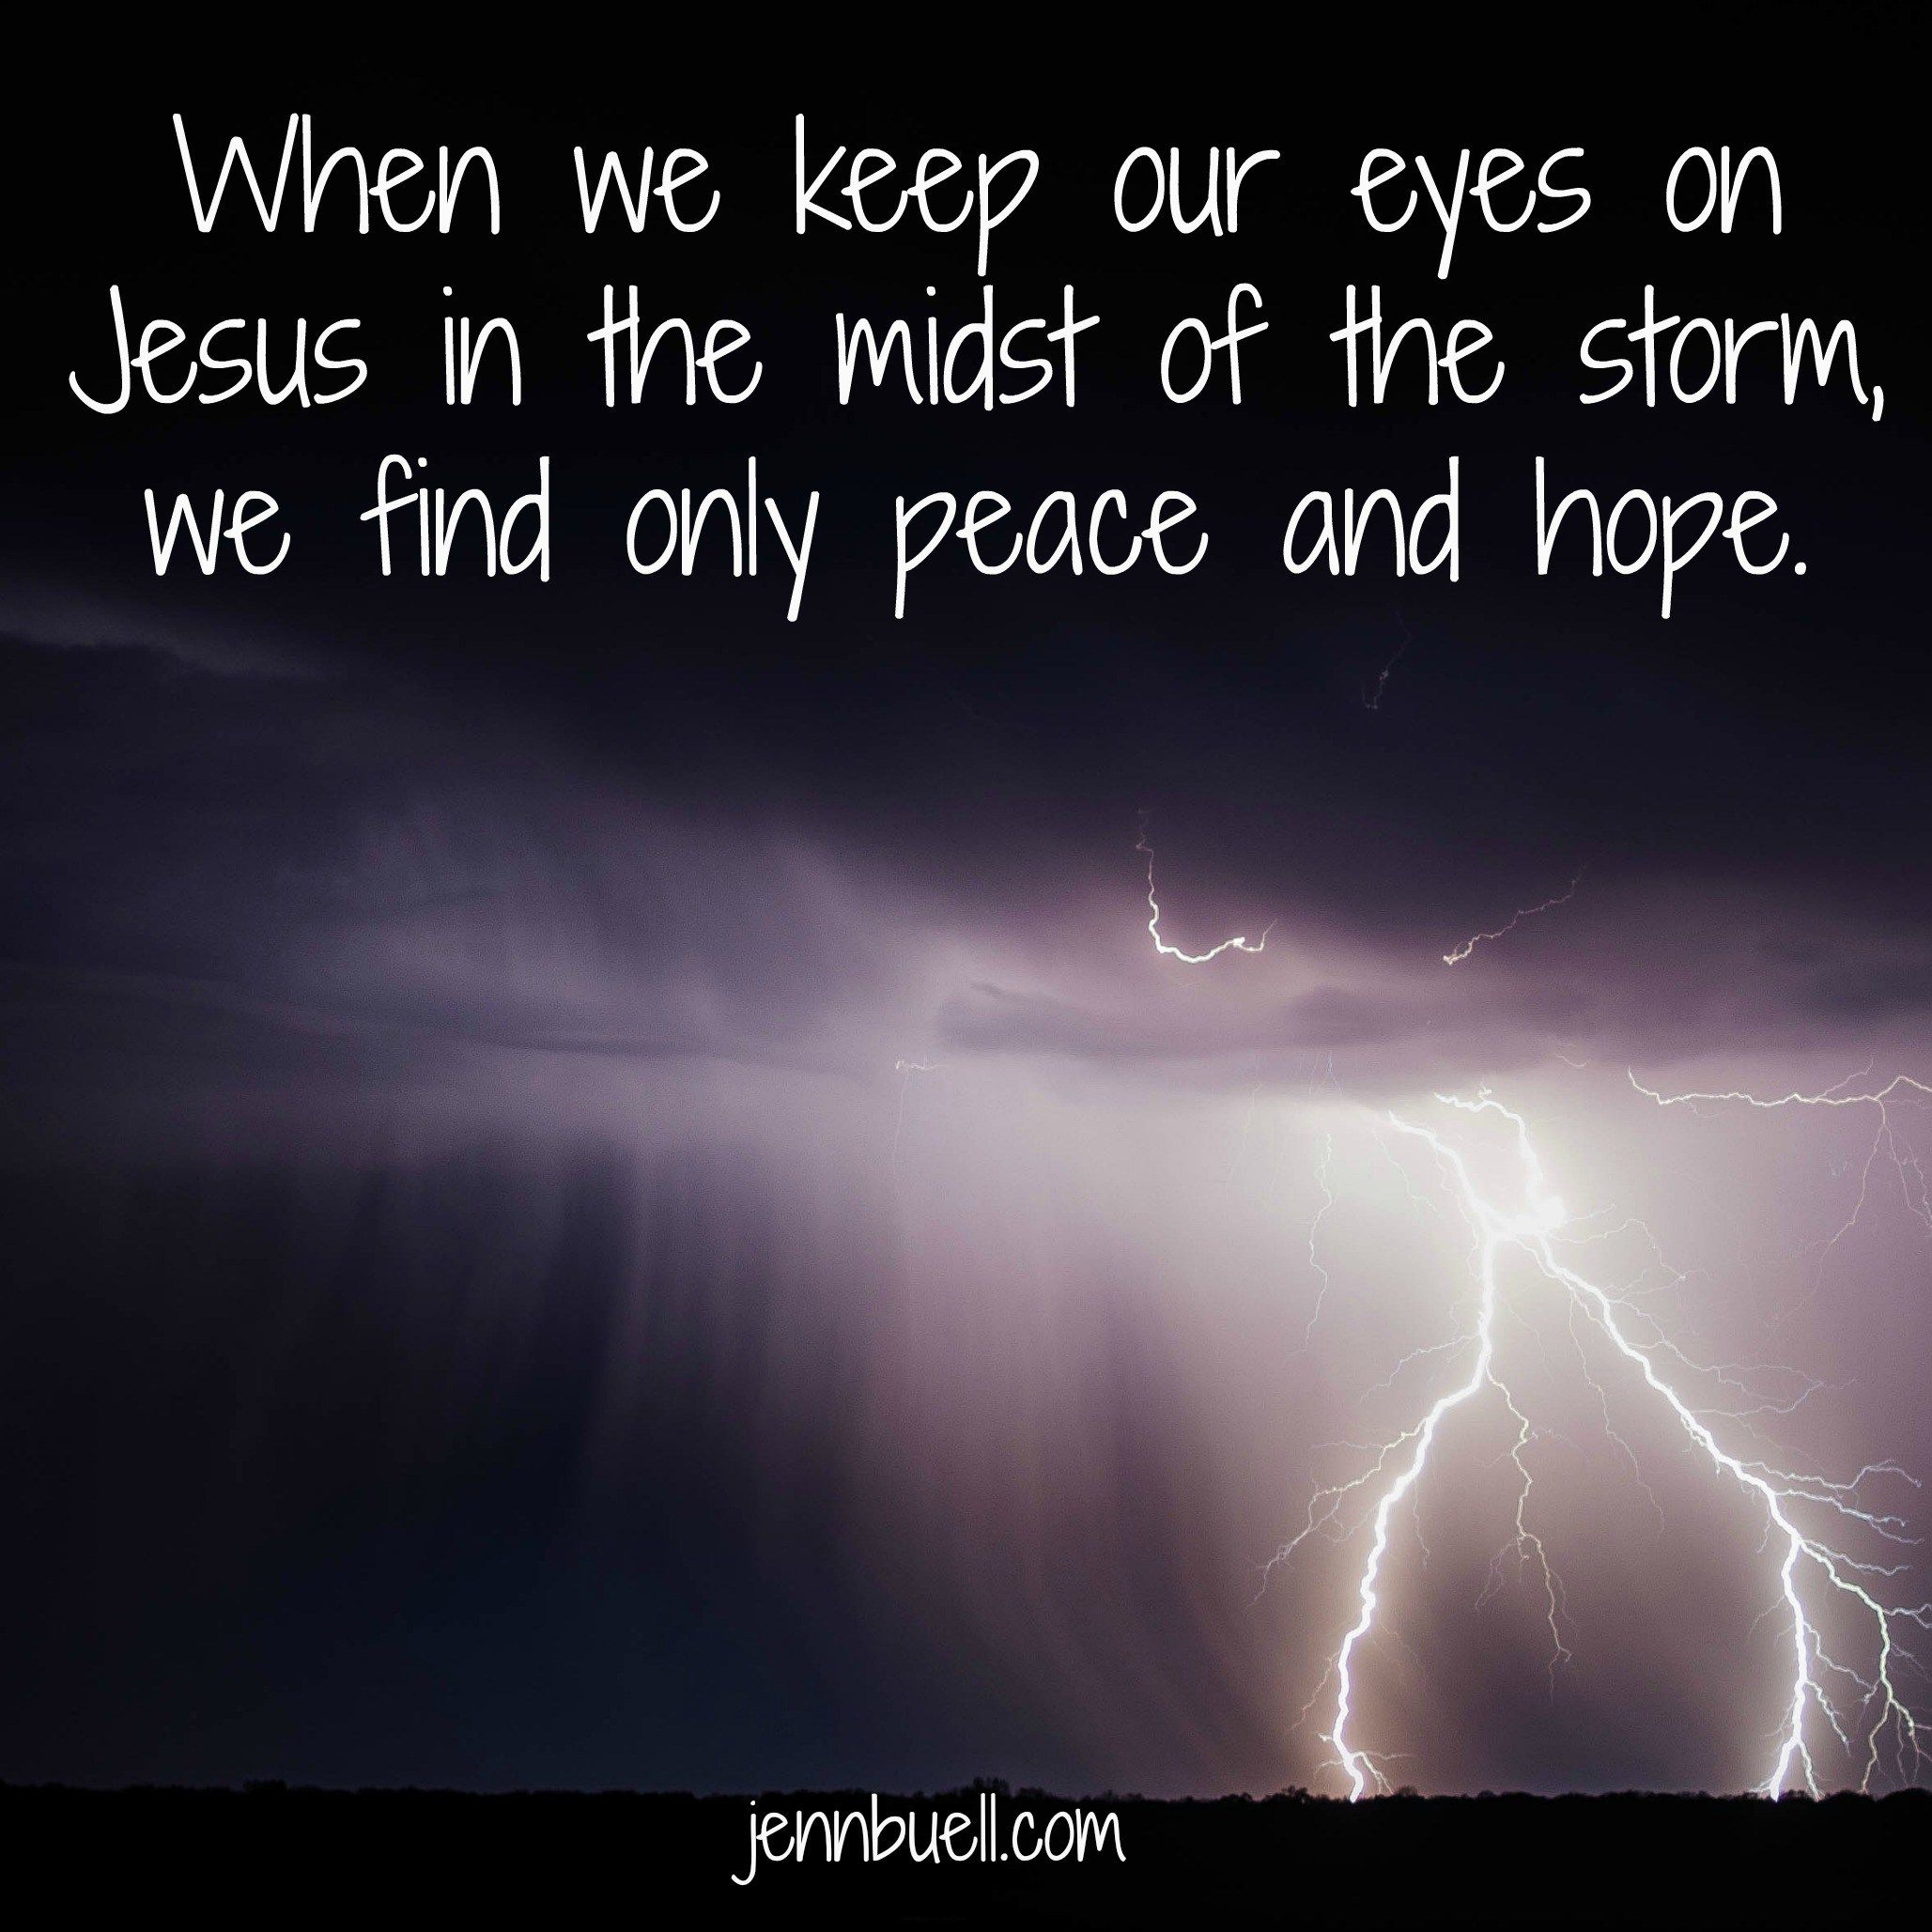 When we keep our eyes on Jesus in the midst of the storm, we find only peace and hope. www.jennbuell.com